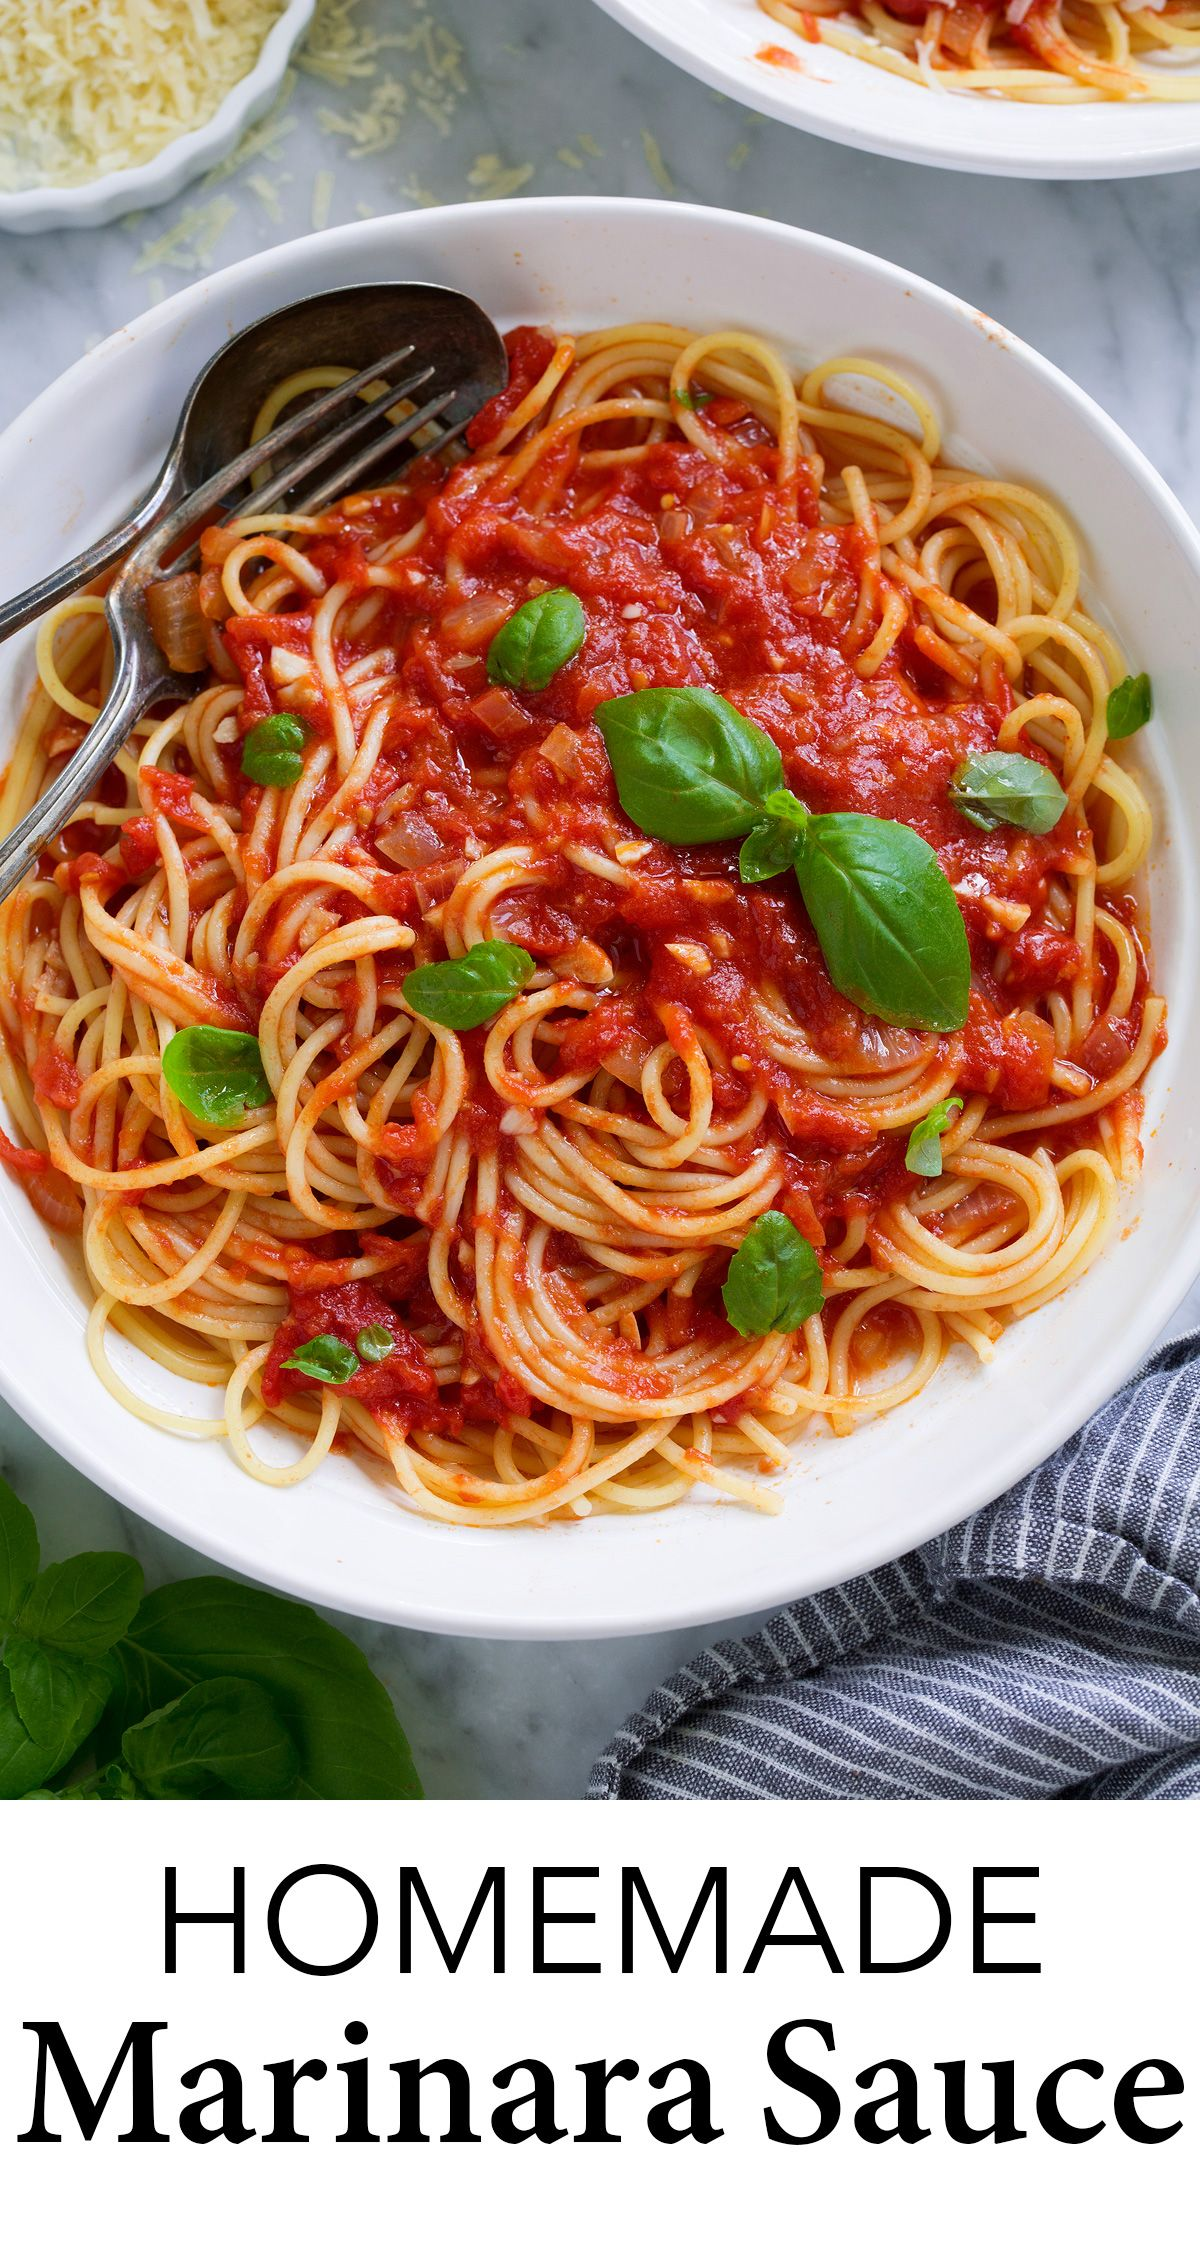 Best Homemade Marinara Sauce It S So Easy To Make And It S So Much Better Than The Bottled Stuff And You Ll Love The Marinara Sauce Homemade Homemade Marinara